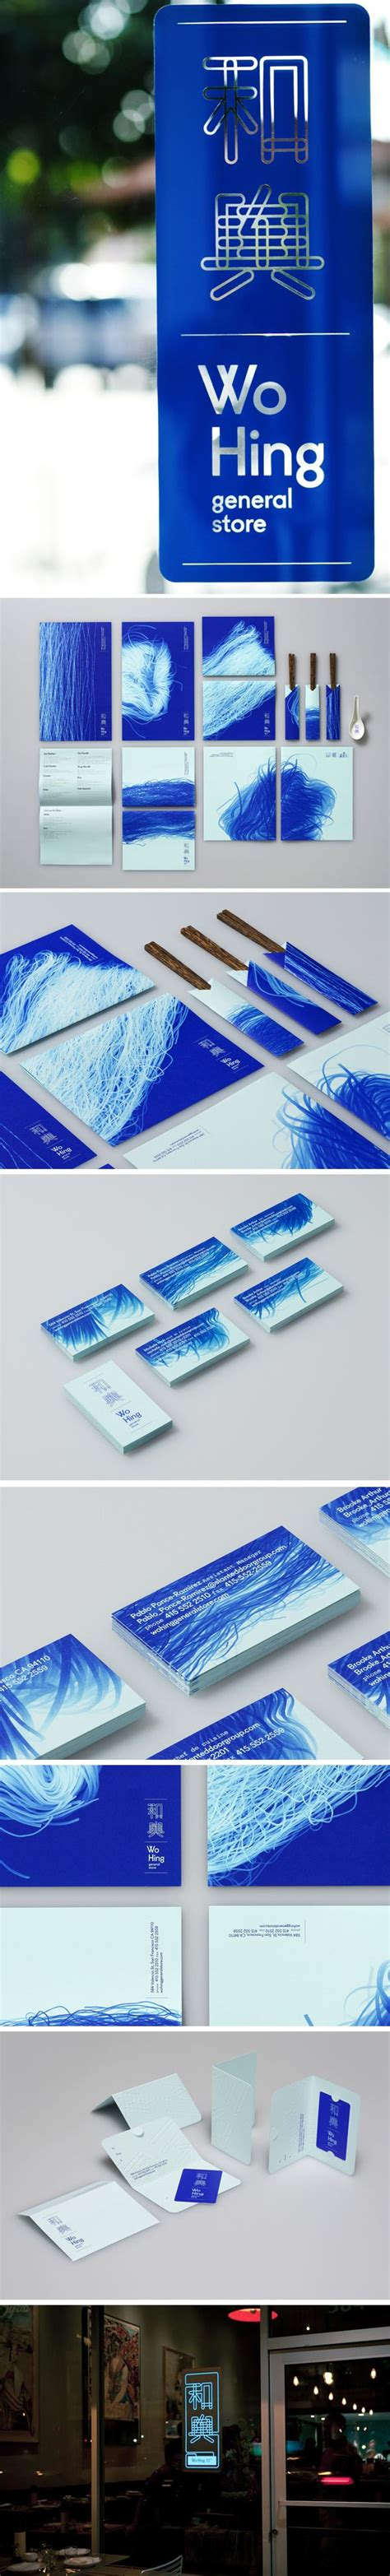 Trend Hing But Template by Best 25 Manual Ideas On Pinterest Brand Manual Brand